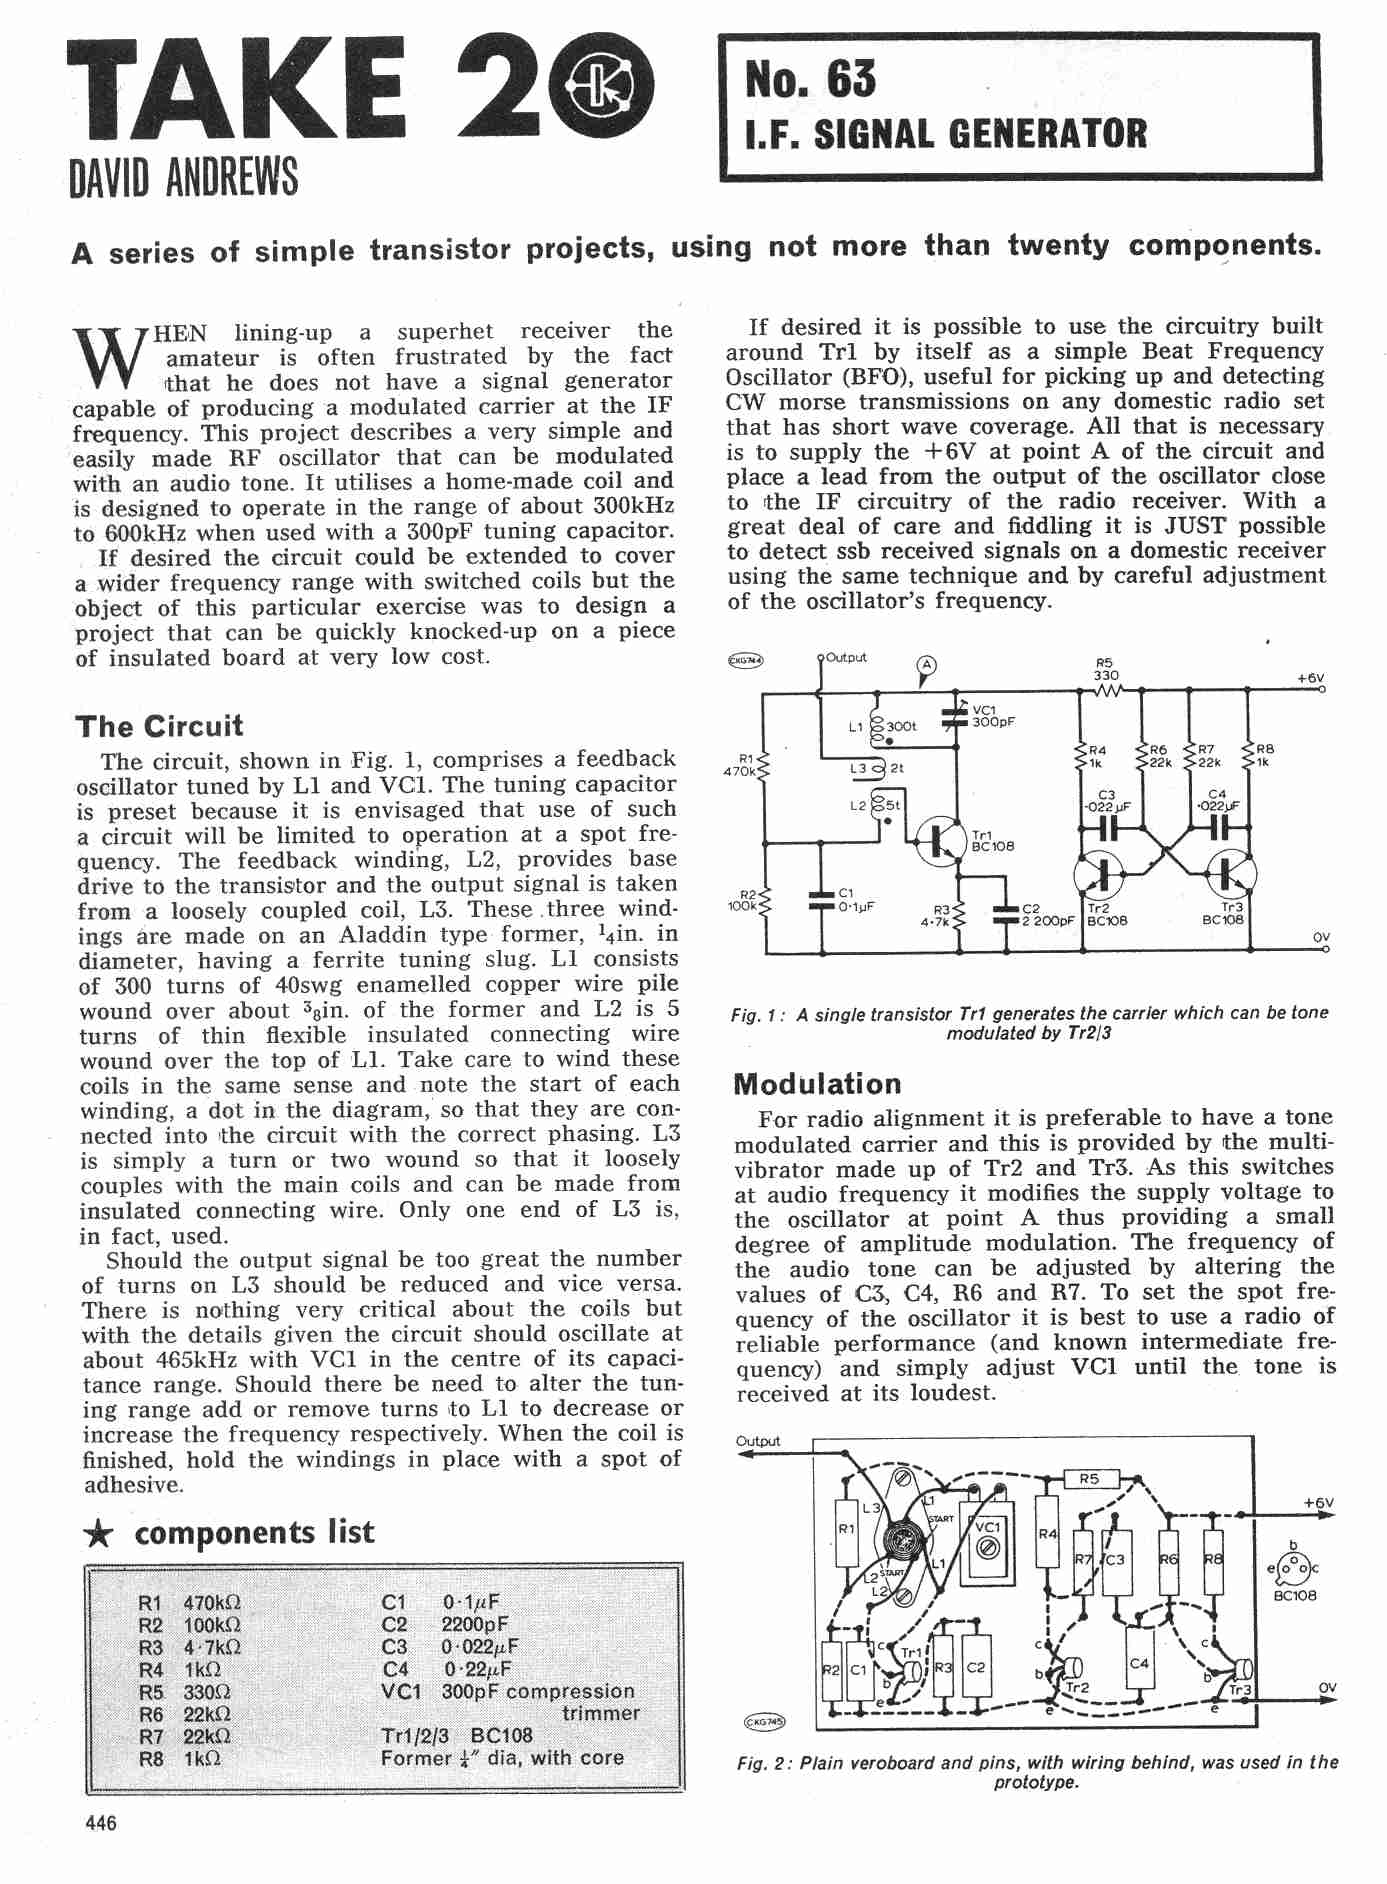 Neon Light Circuit Resistance Ask Answer Wiring Diagram Transistor Time Relay Ledandlightcircuit Vintage Radio And Electronics Take 20 Electronic Projects Bulb Circuits